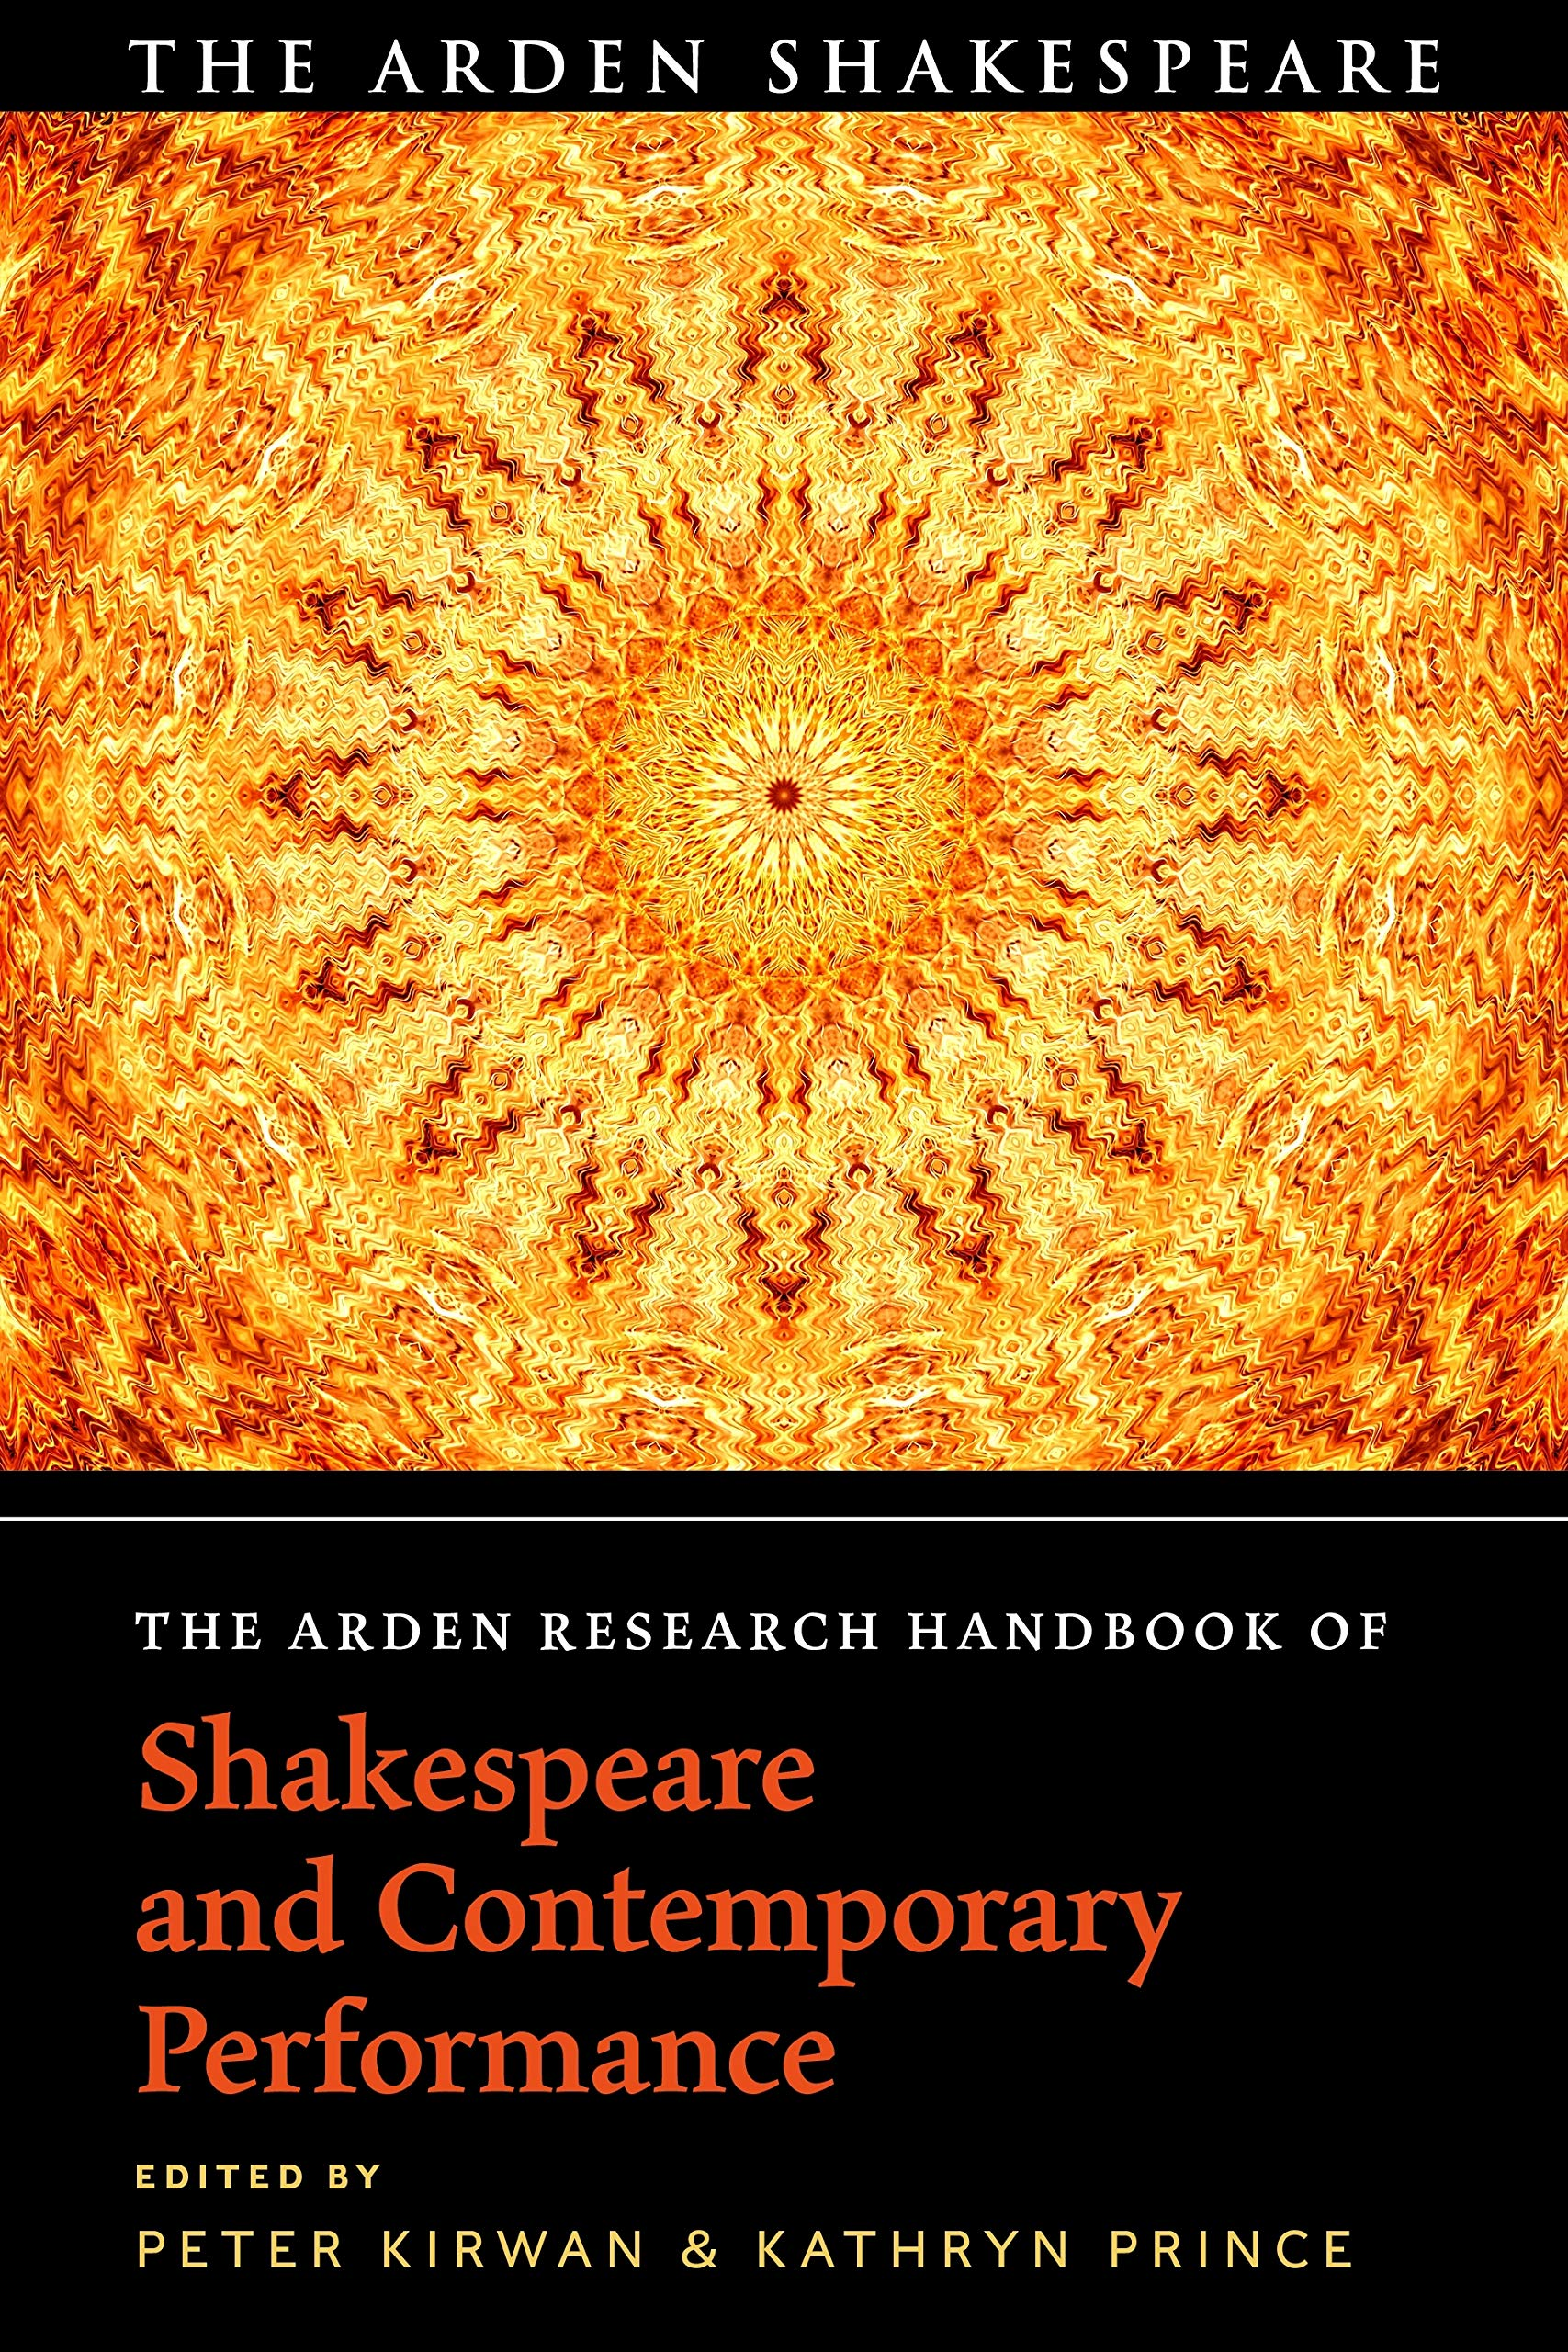 The Arden Research Handbook of Shakespeare and Contemporary Performance